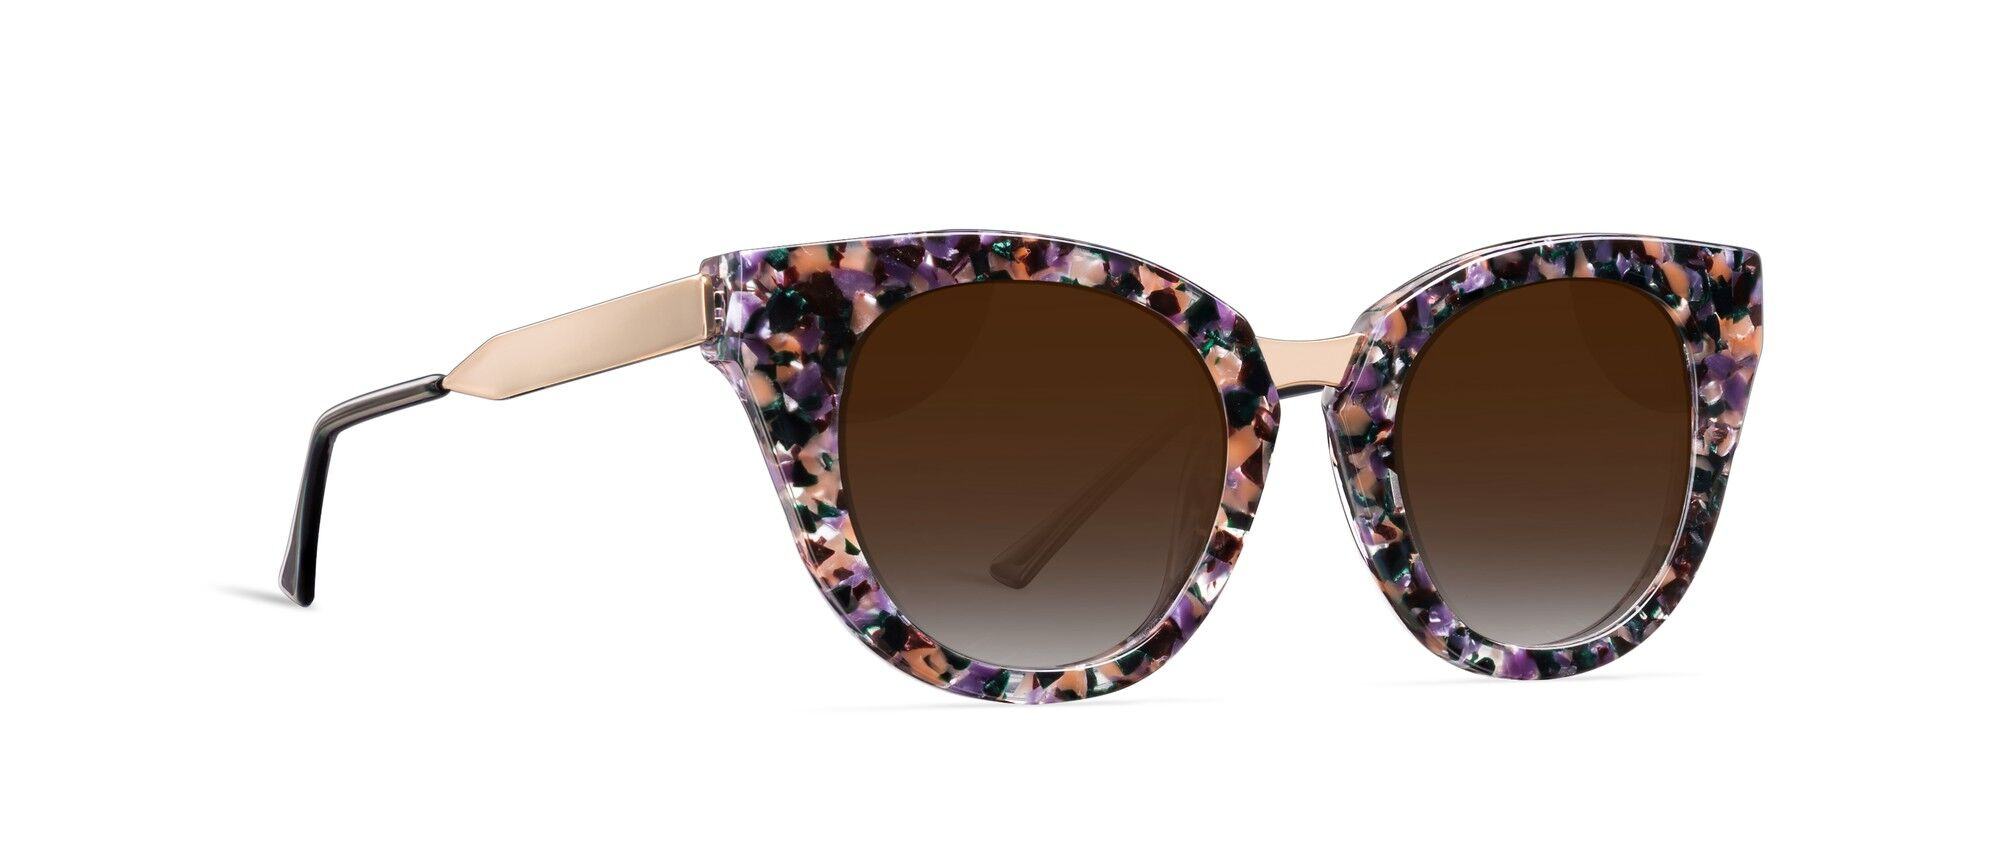 thierry-lasry-snobby-FS-2